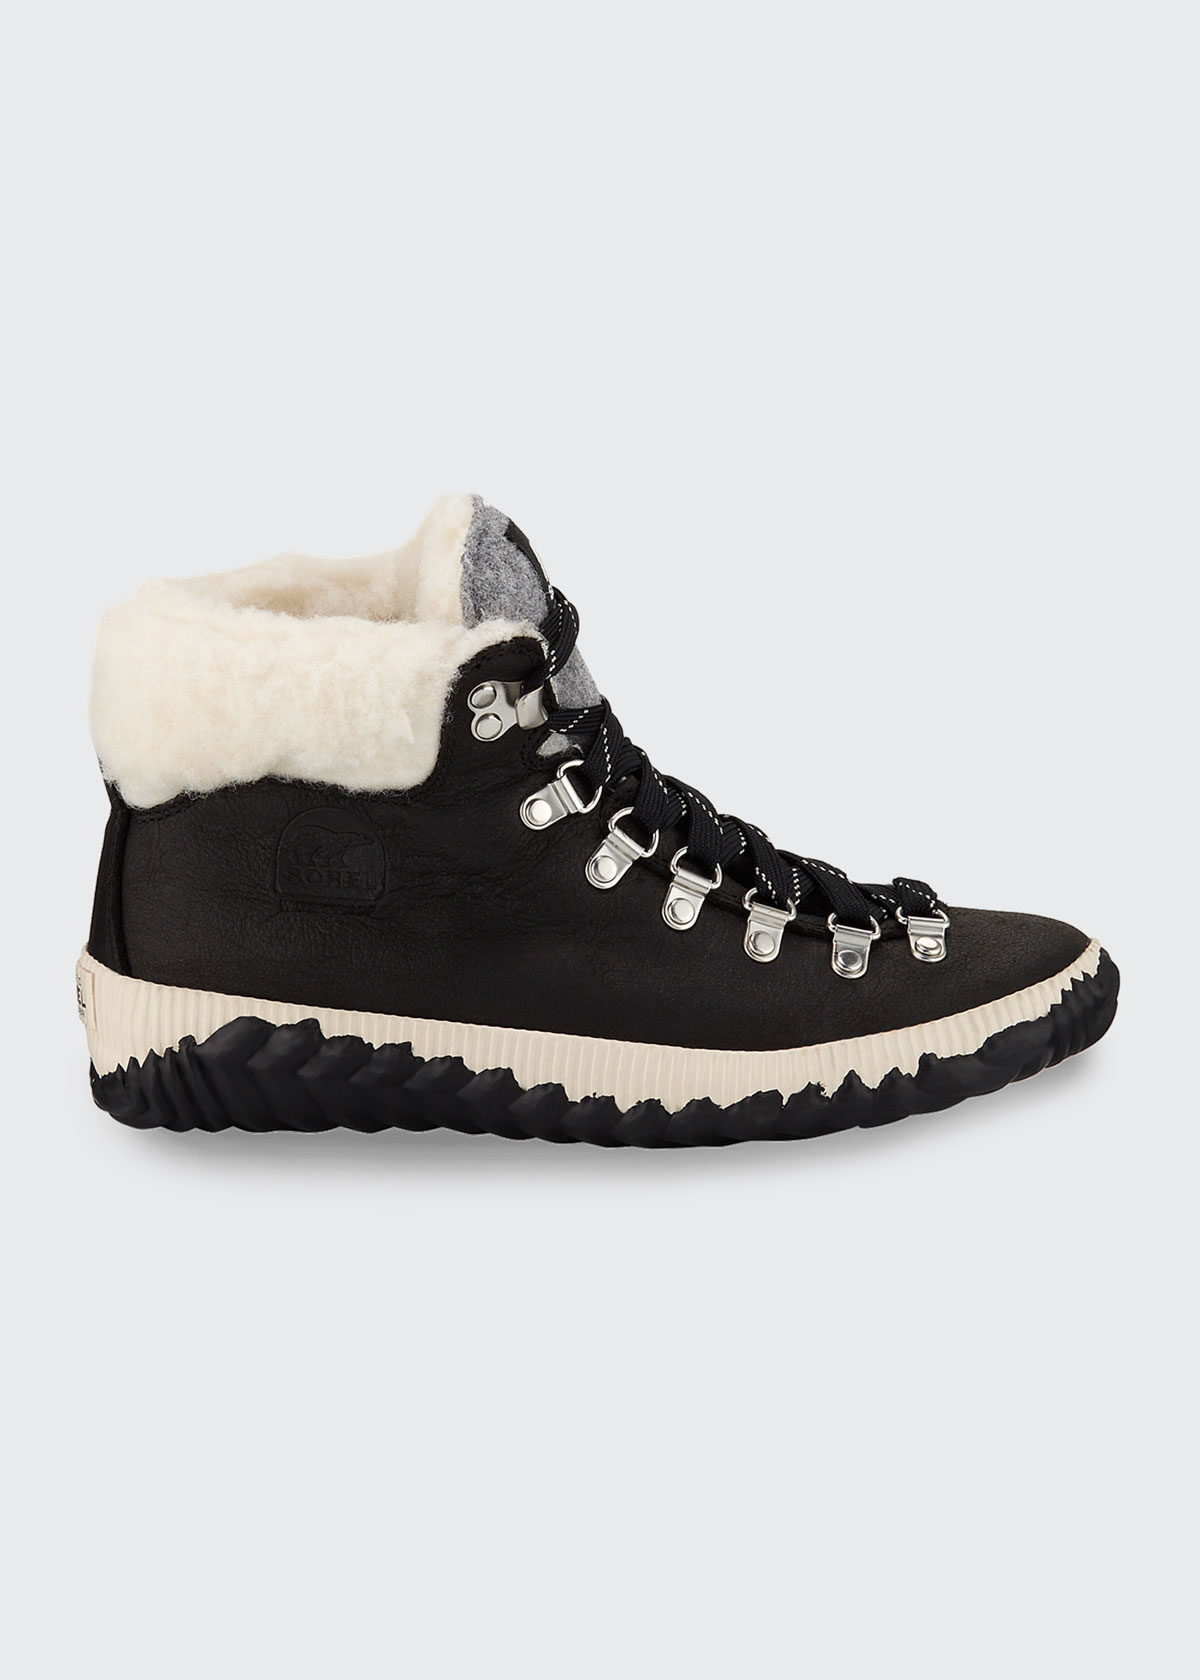 Sorel Boots OUT 'N ABOUT PLUS CONQUEST WATERPROOF BOOTIES